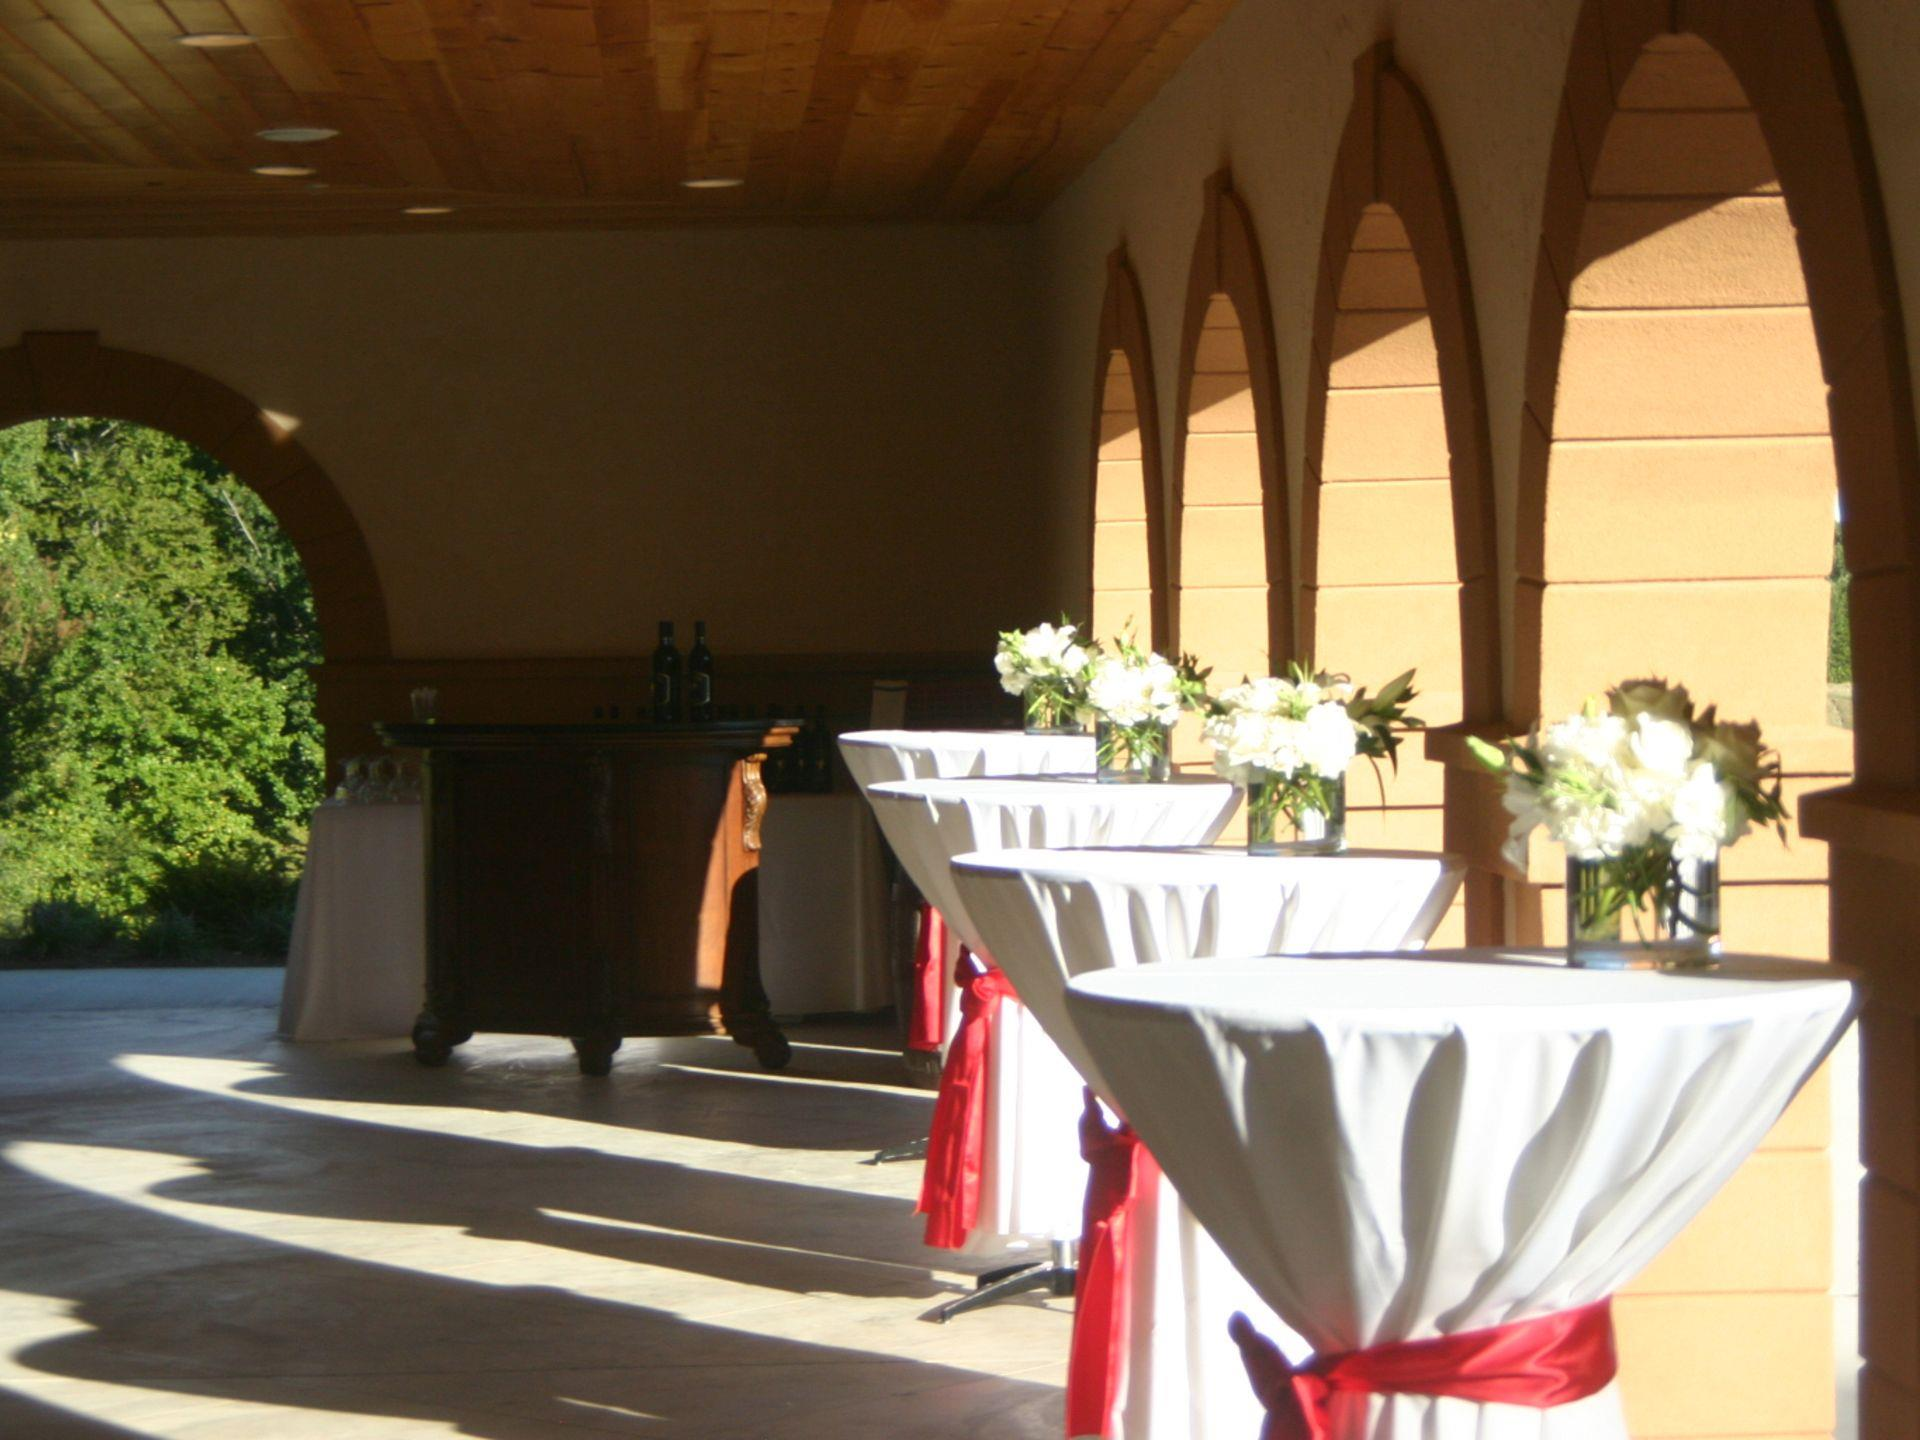 Tables set up in a hallway for a catering event